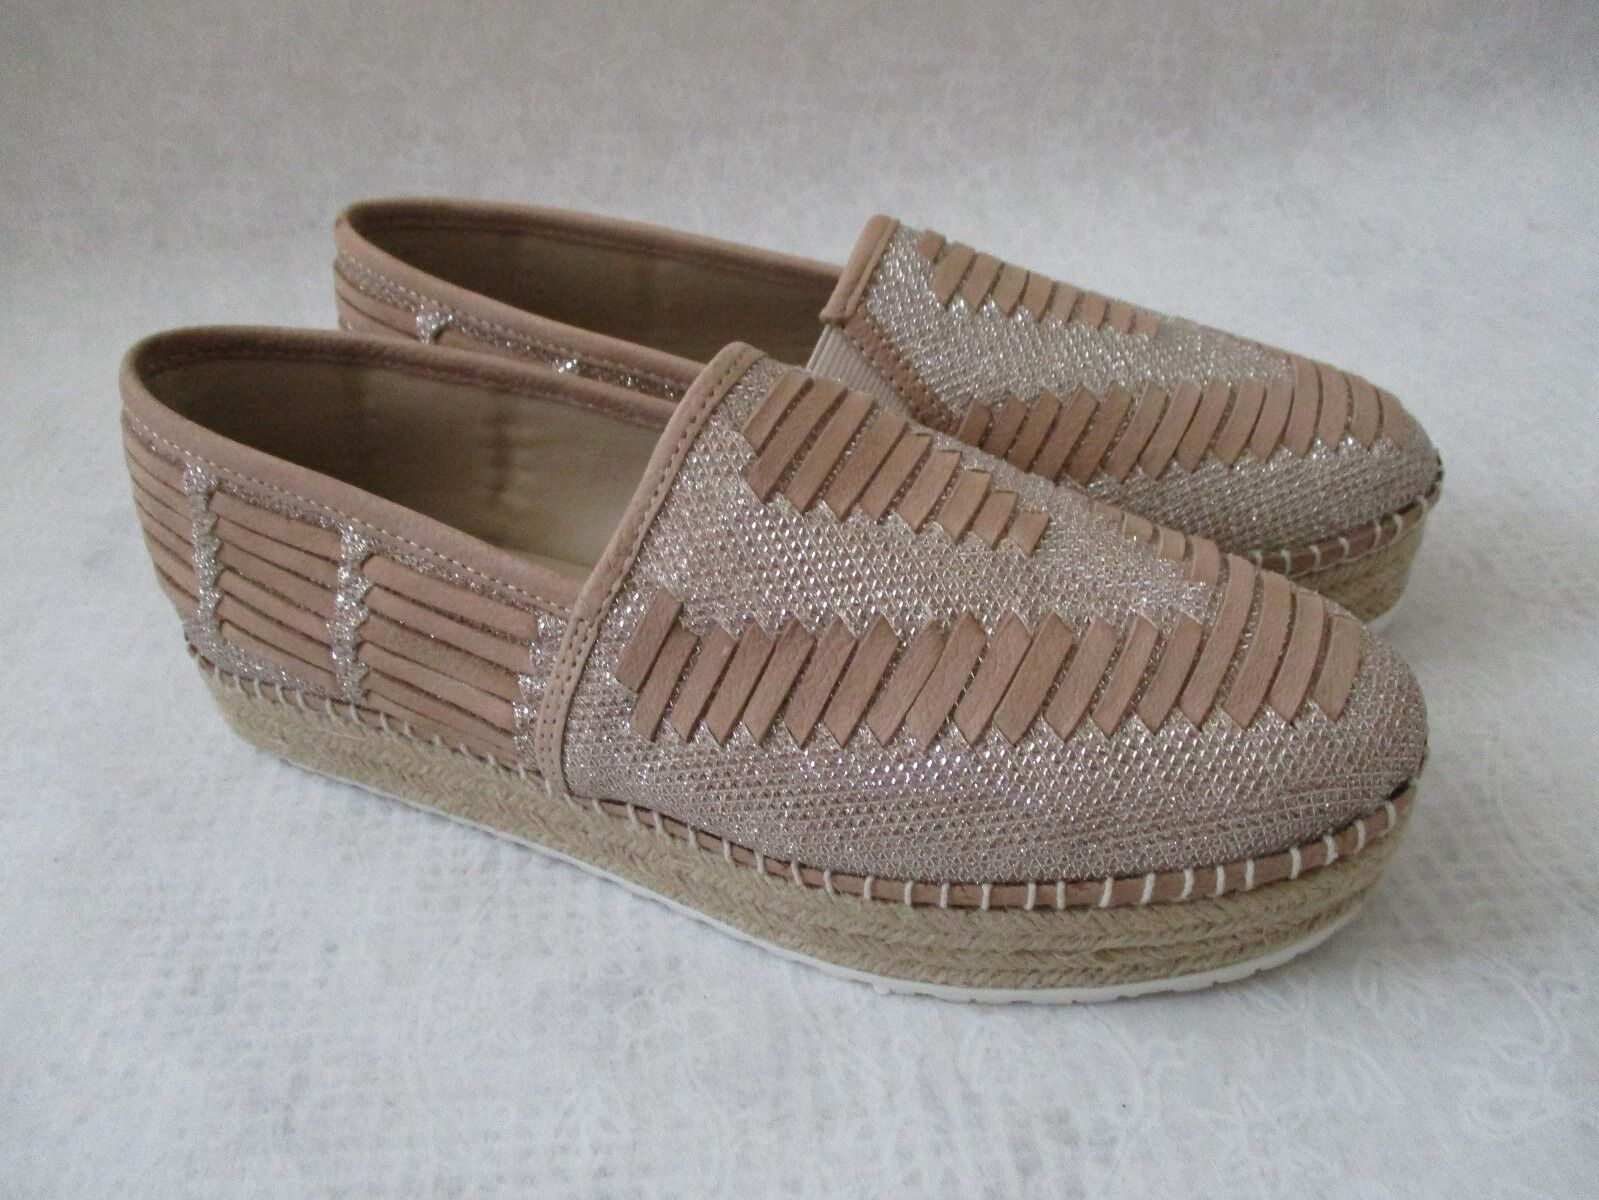 STEVEN NATURAL COMFORT NC-CHARM FLAT chaussures Taille 8 1 2 M - NEW W BOX